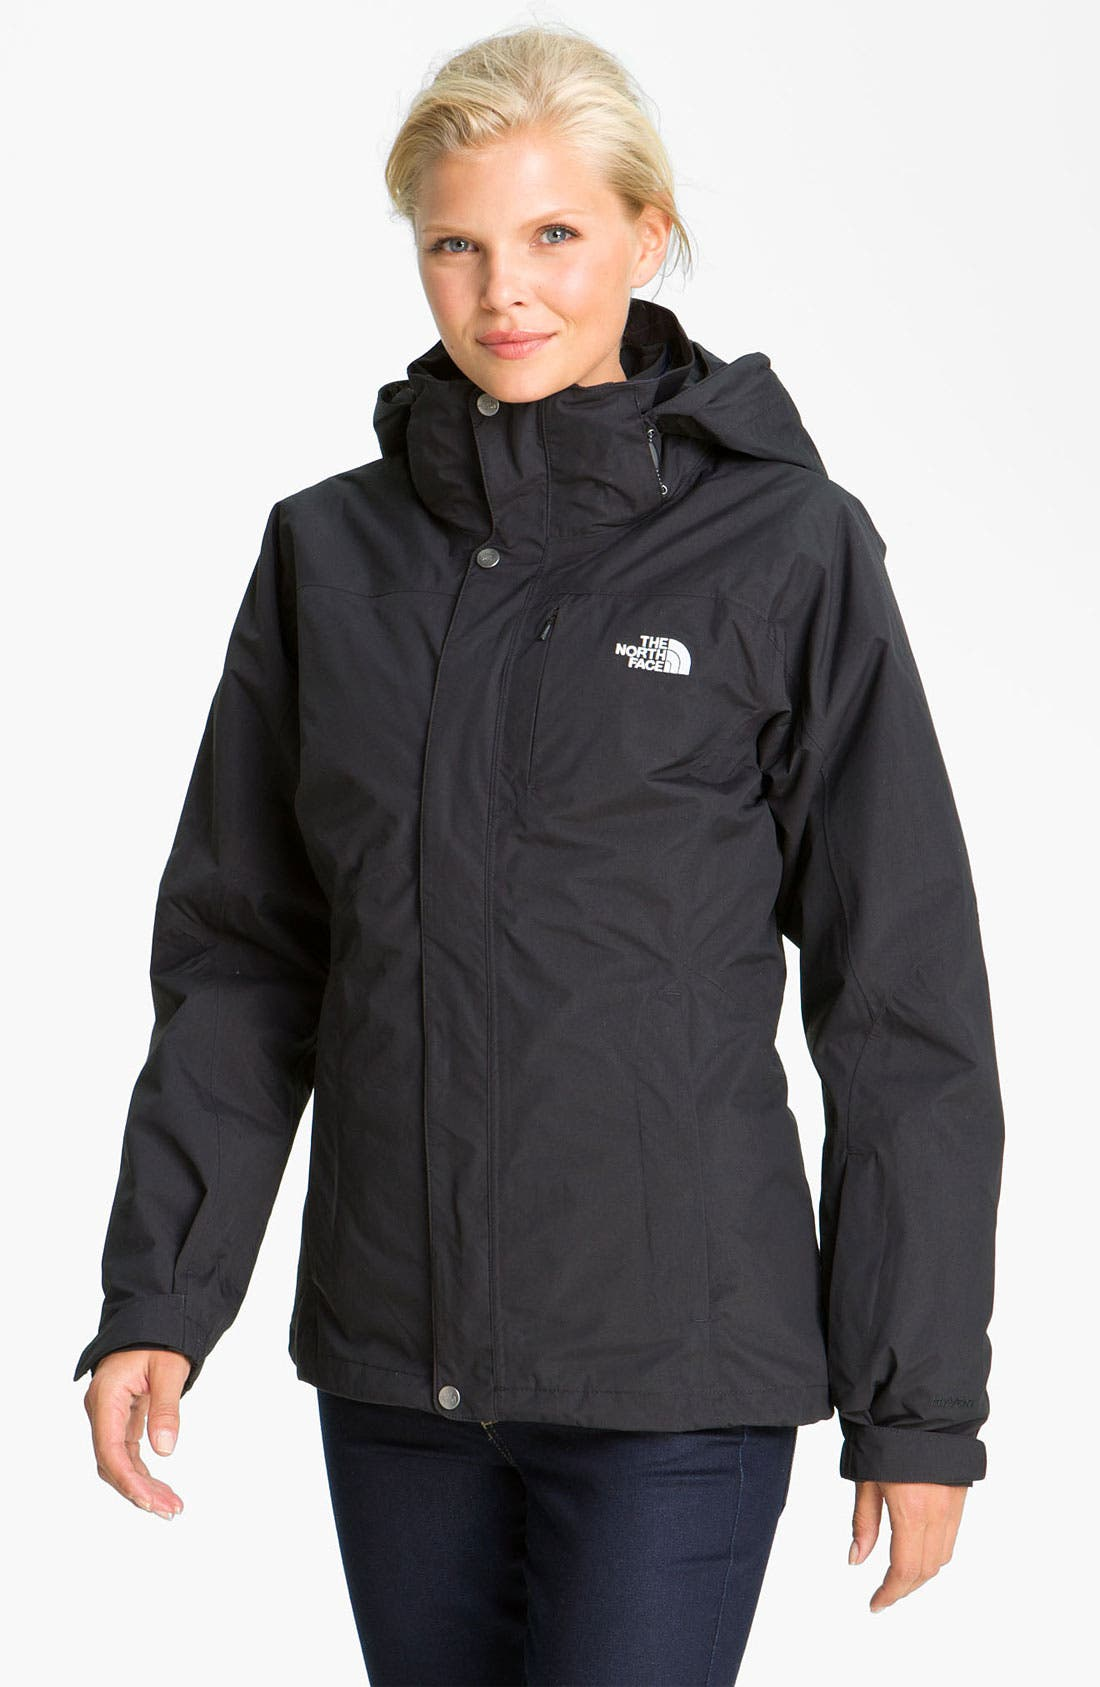 Main Image - The North Face 'Deuces' TriClimate® 3-in-1 Jacket